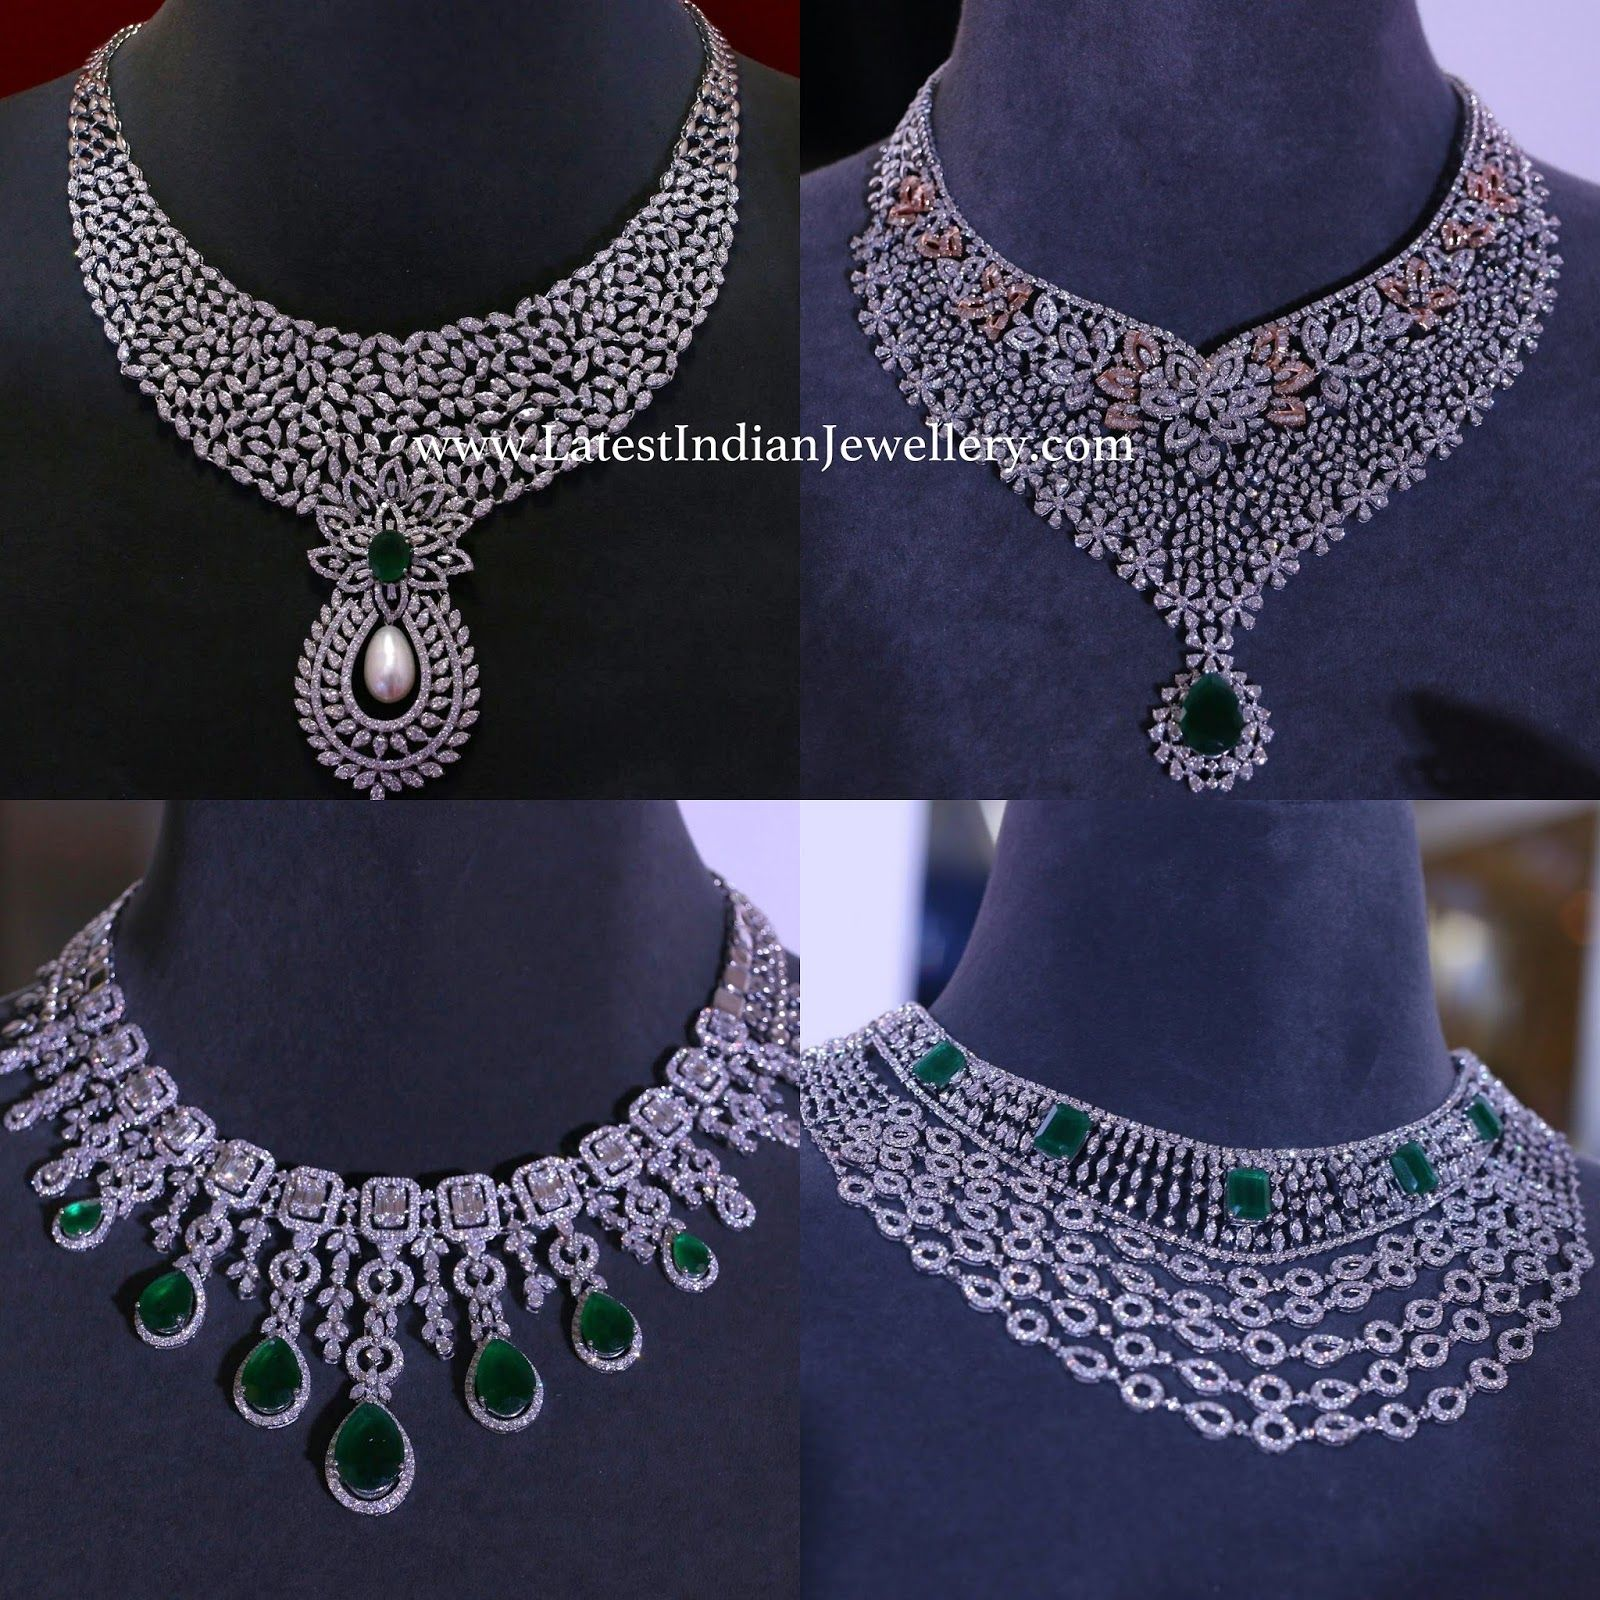 indian imperial ecatalogue auctions necklace s en diamond india jewellery of lot sotheby art